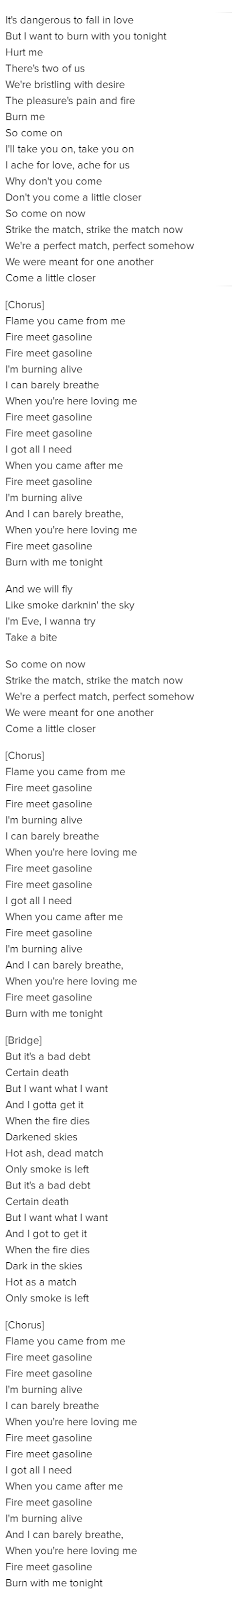 Testo Lyrics Fire Meet Gasoline Sia